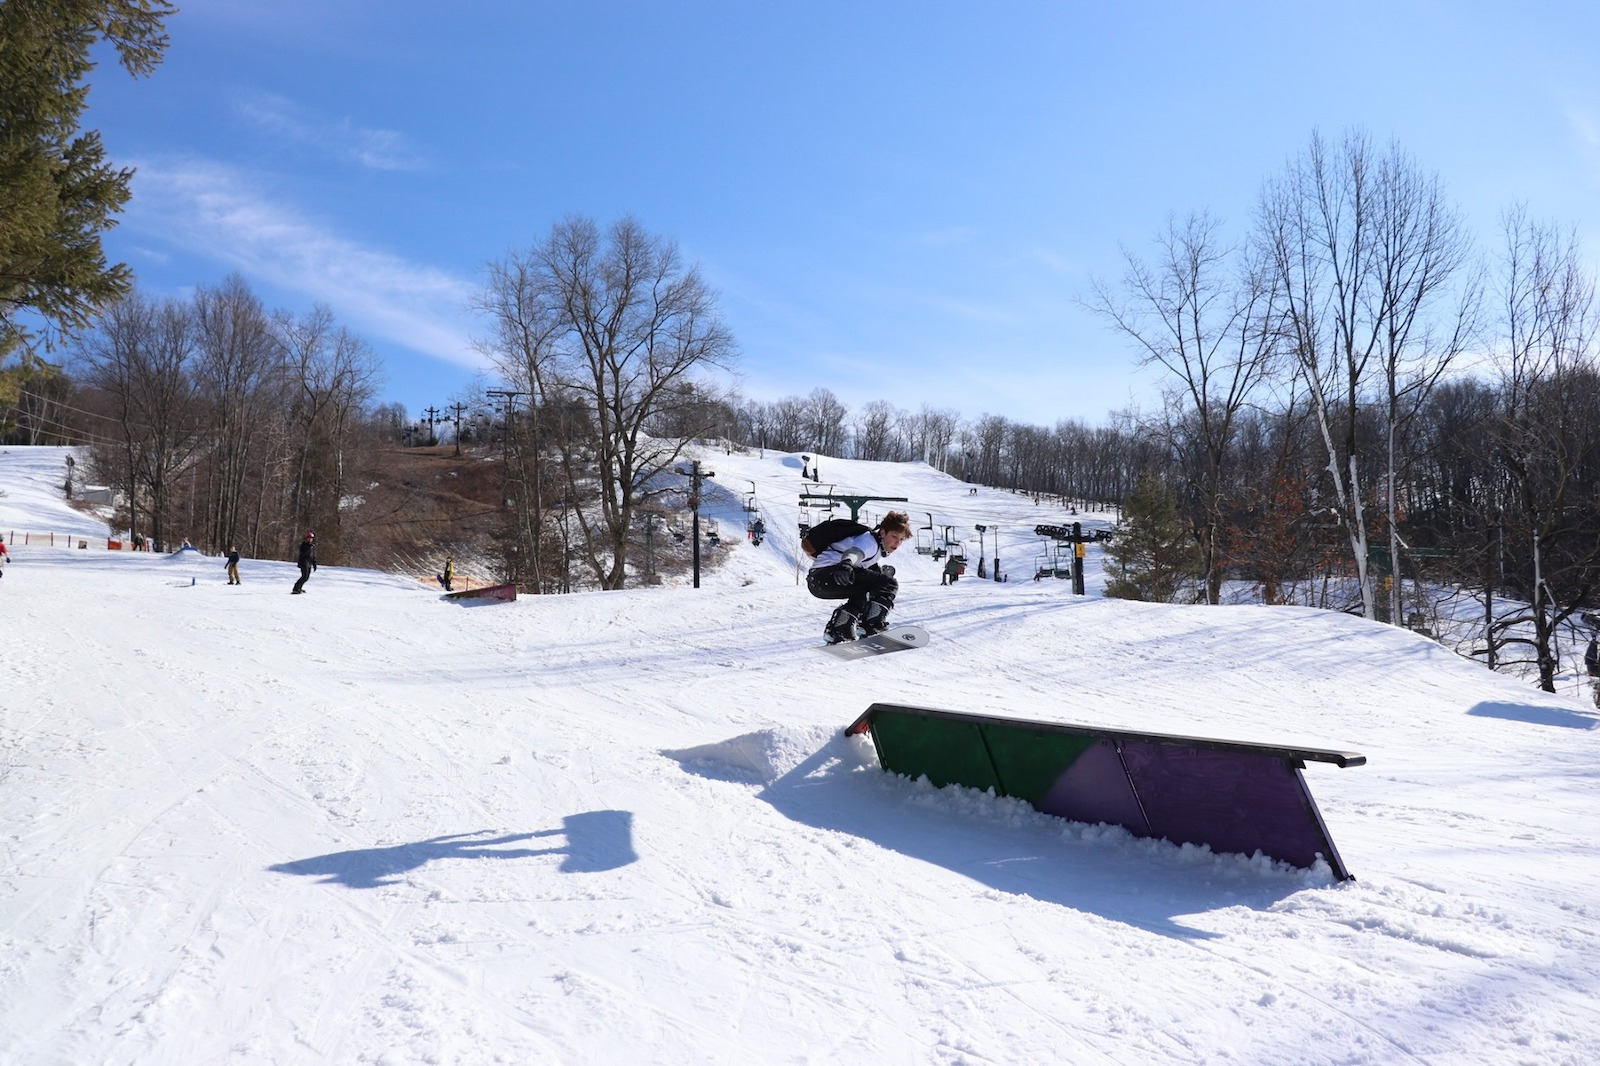 Image of a snowboarder jumping onto a rail at the terrain park at Mount Peter in New York